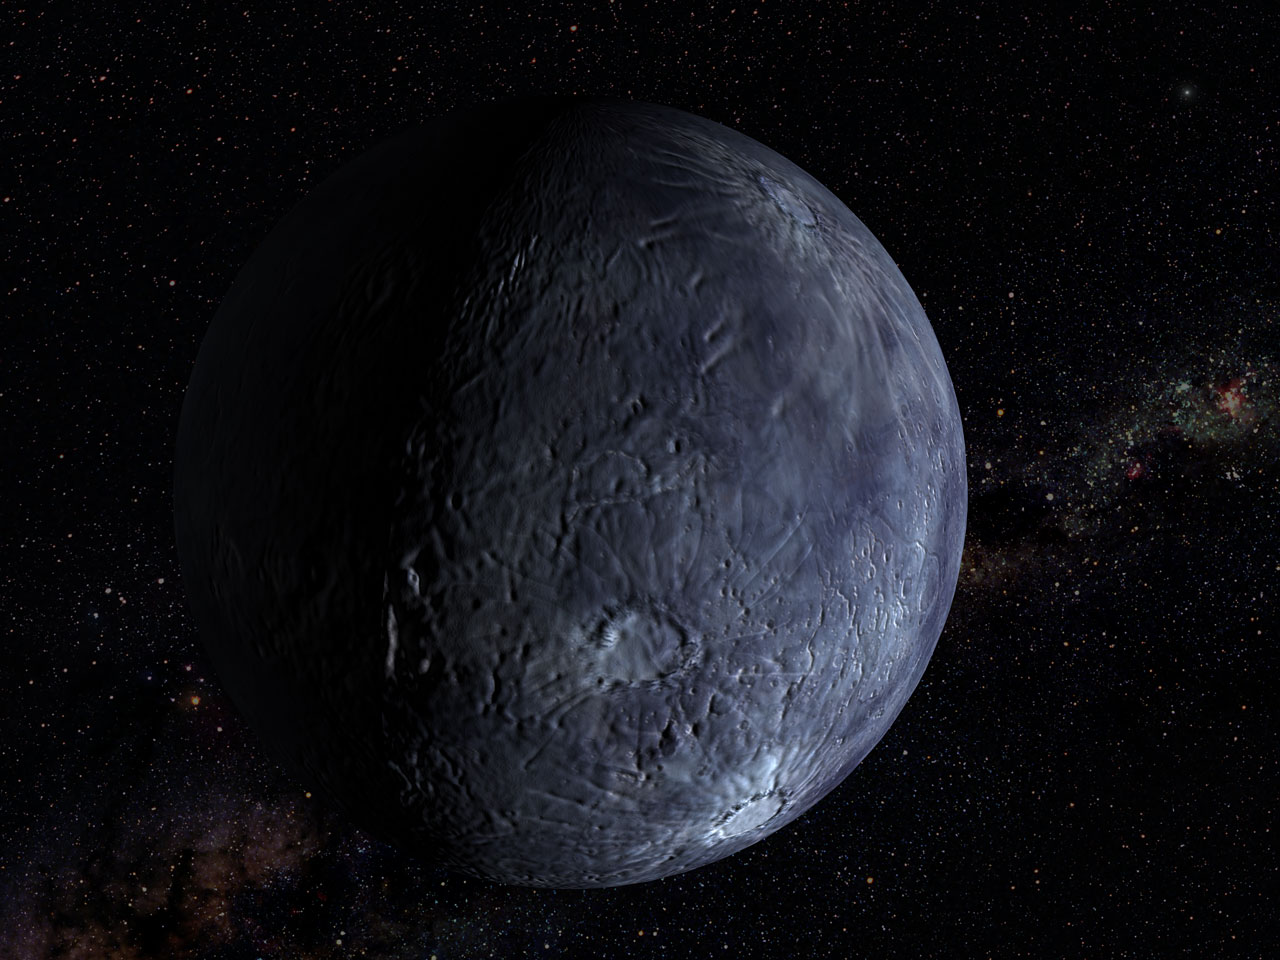 Hubble Spots an Icy World Far Beyond Pluto (artist's impression)